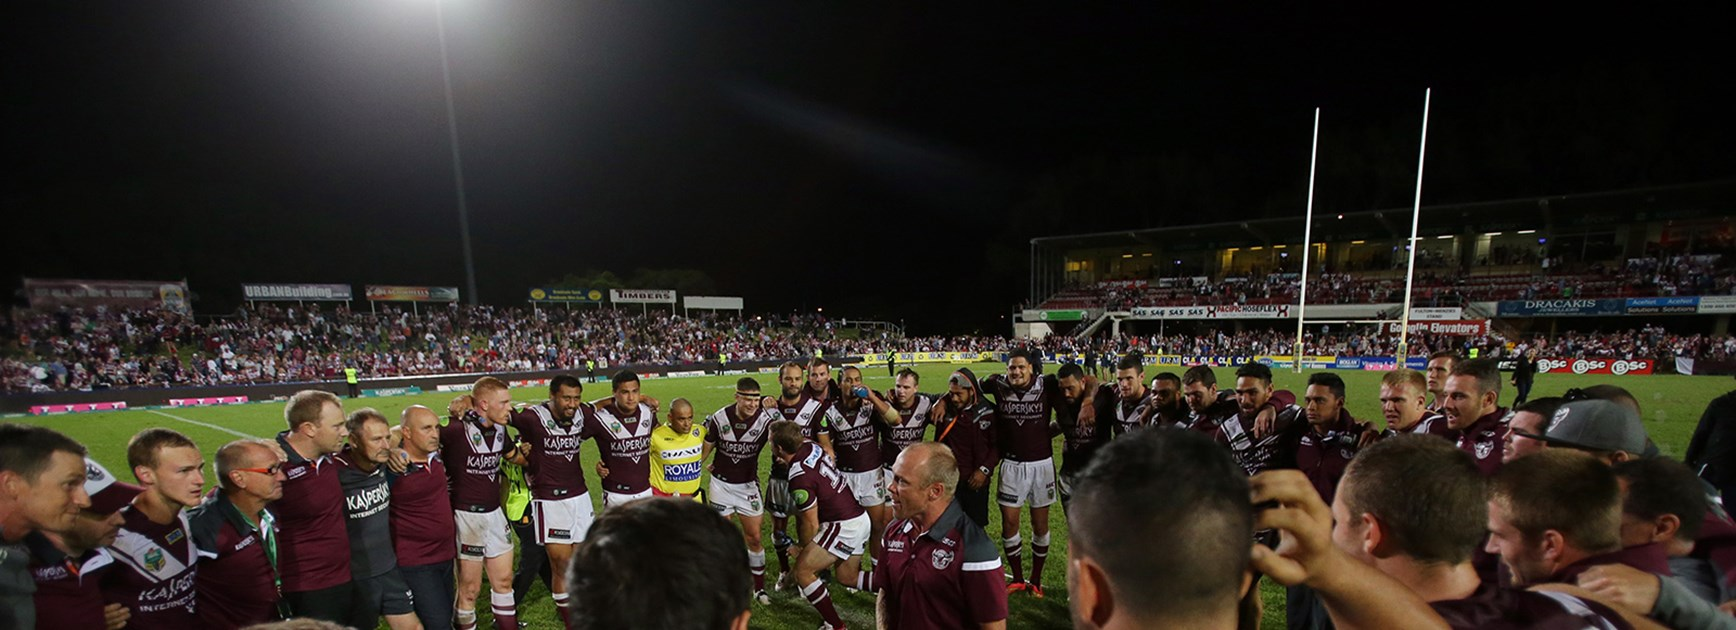 Manly at Brookvale Oval are a totally different proposition according to Des Hasler.